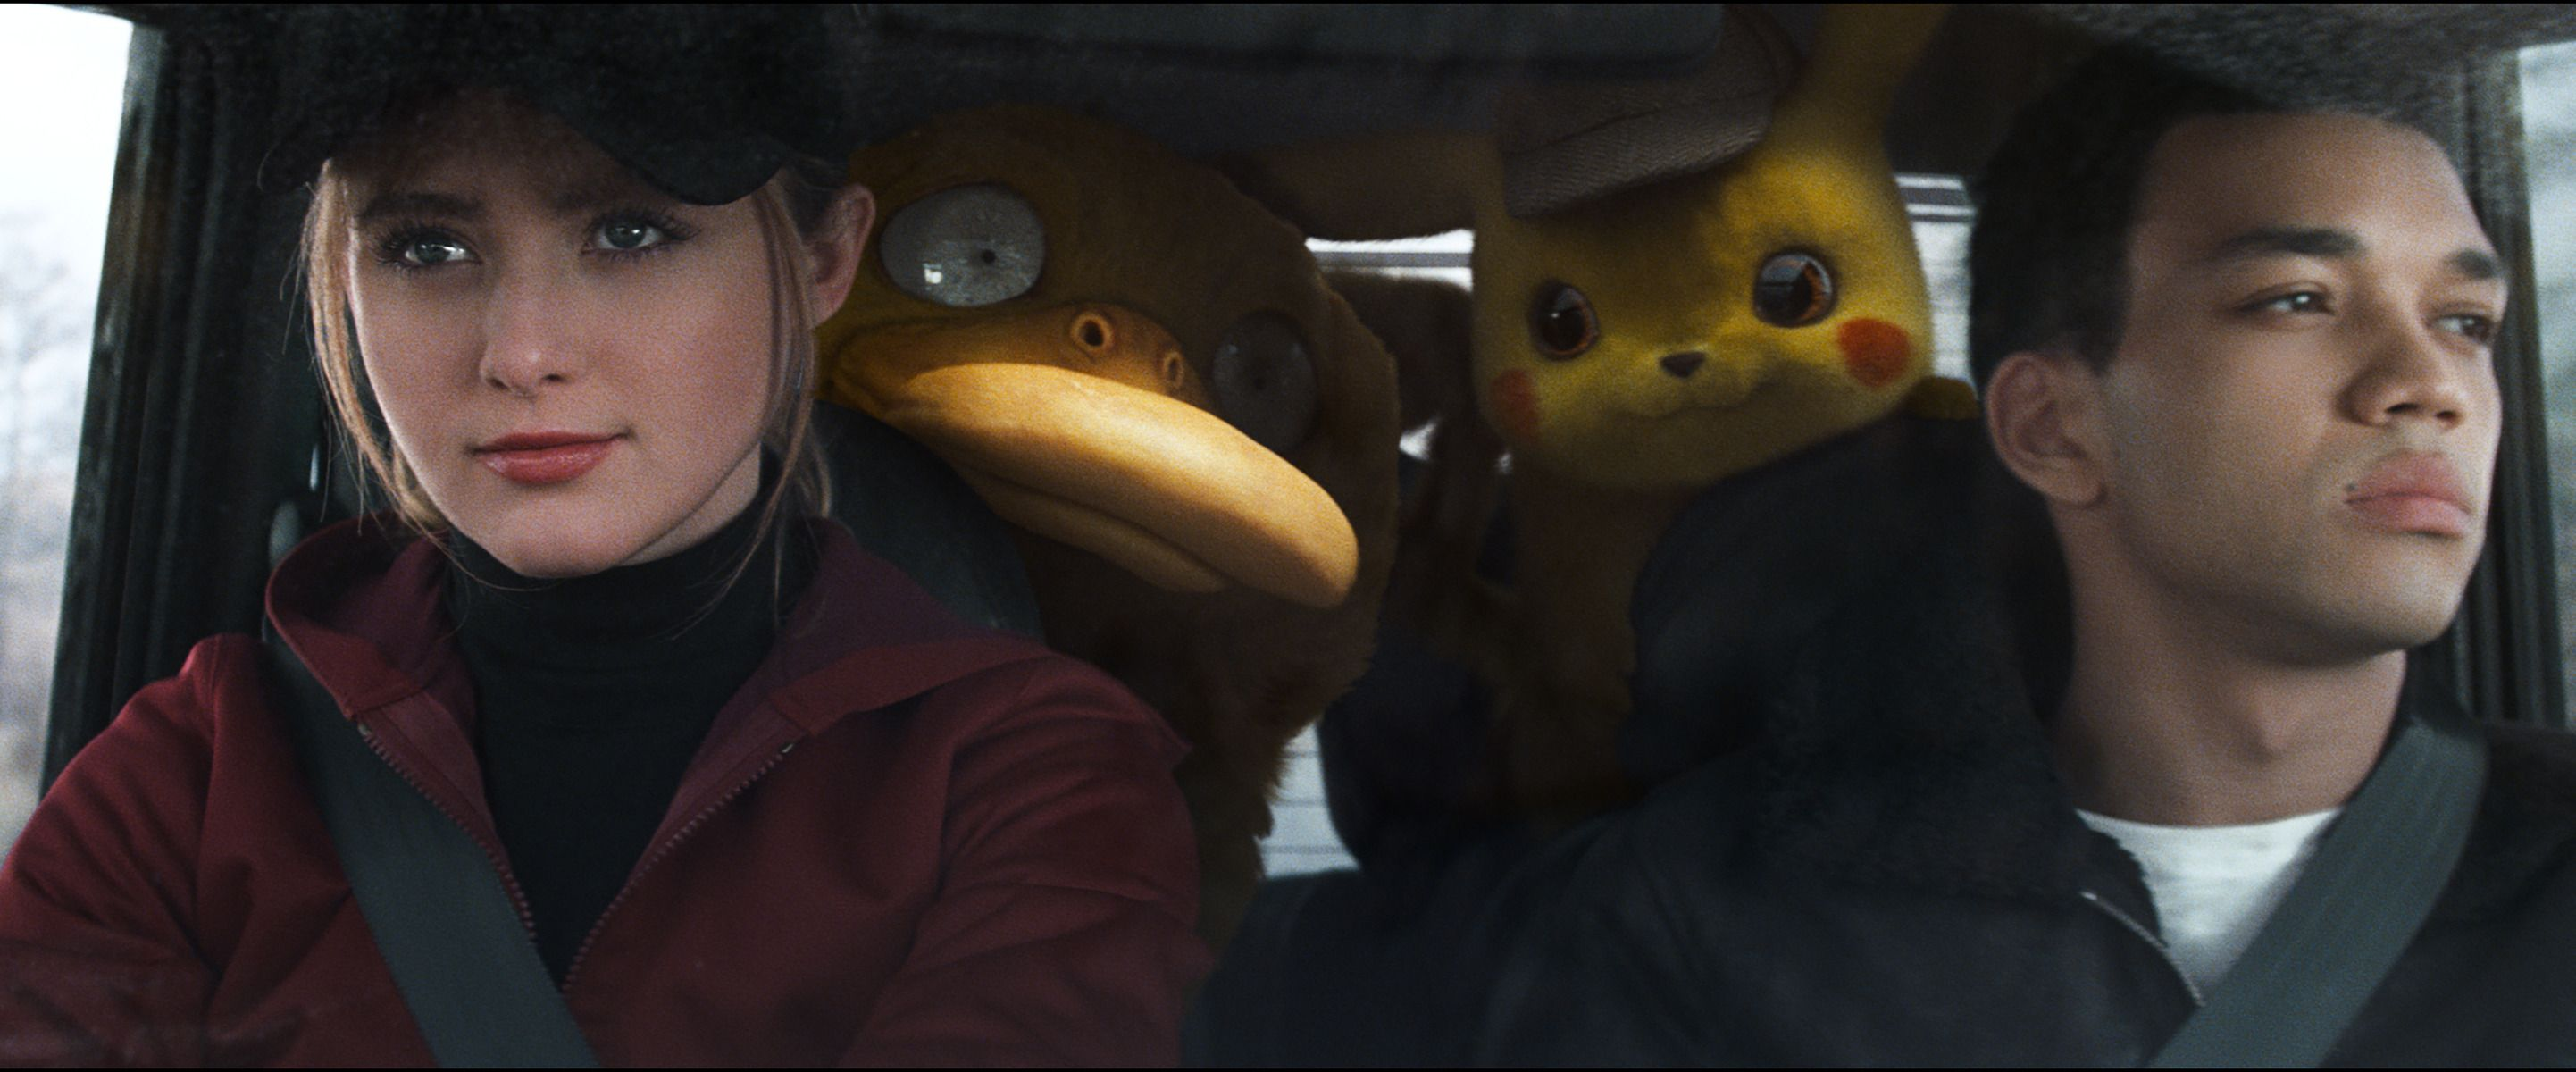 Detective Pikachu Cast And Crew Test Their Pokemon Iq In A Pop